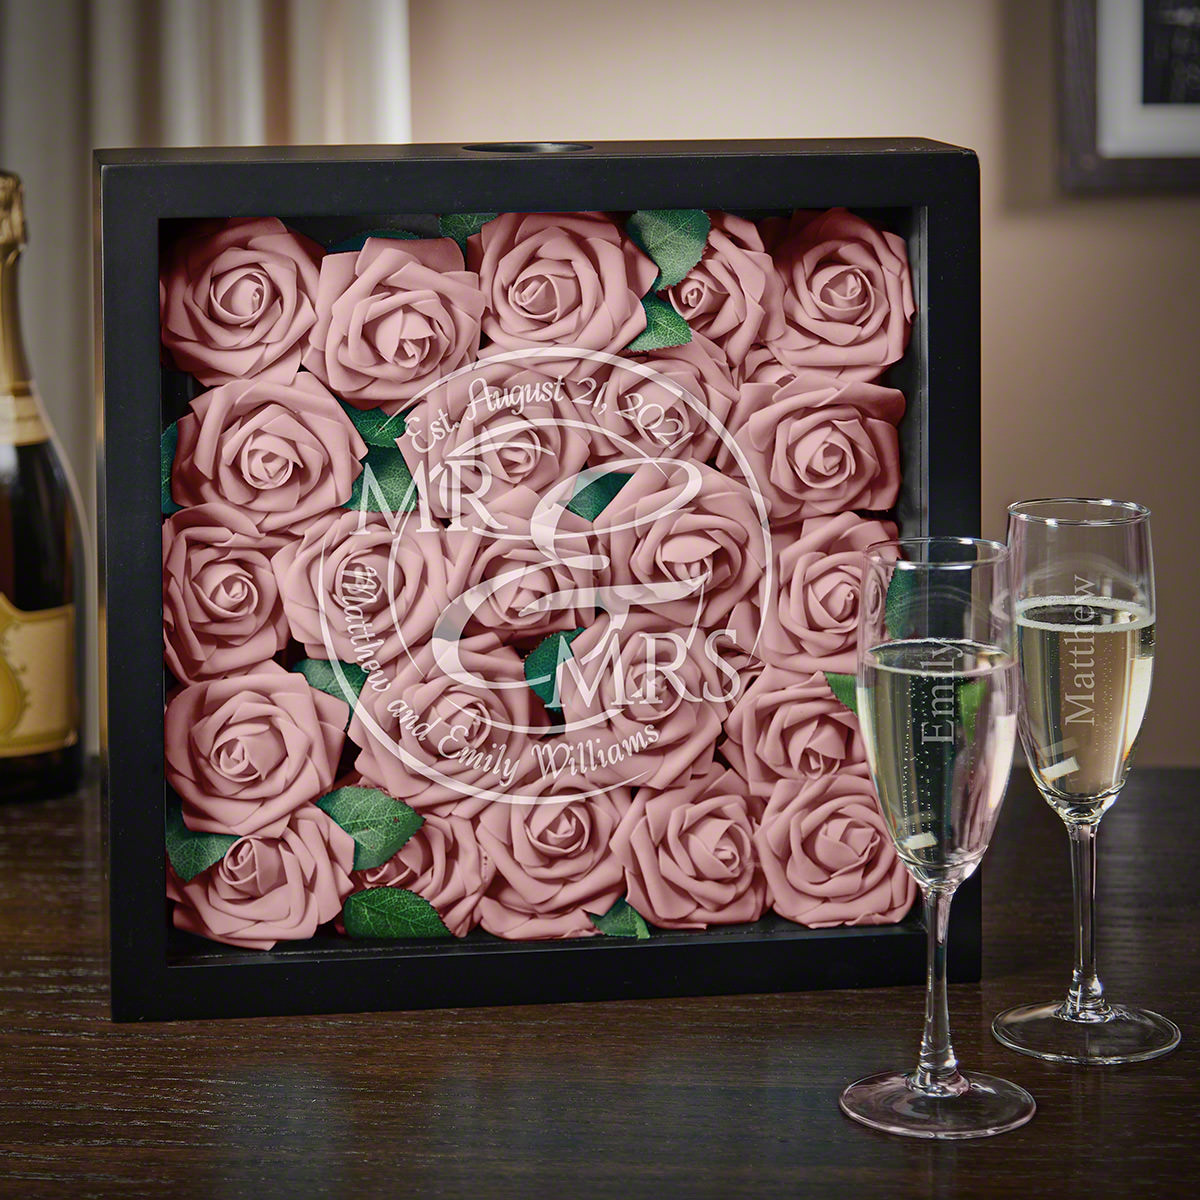 When Love Comes Together Personalized Shadow Box & Champagne Flutes Wedding Gift Ideas